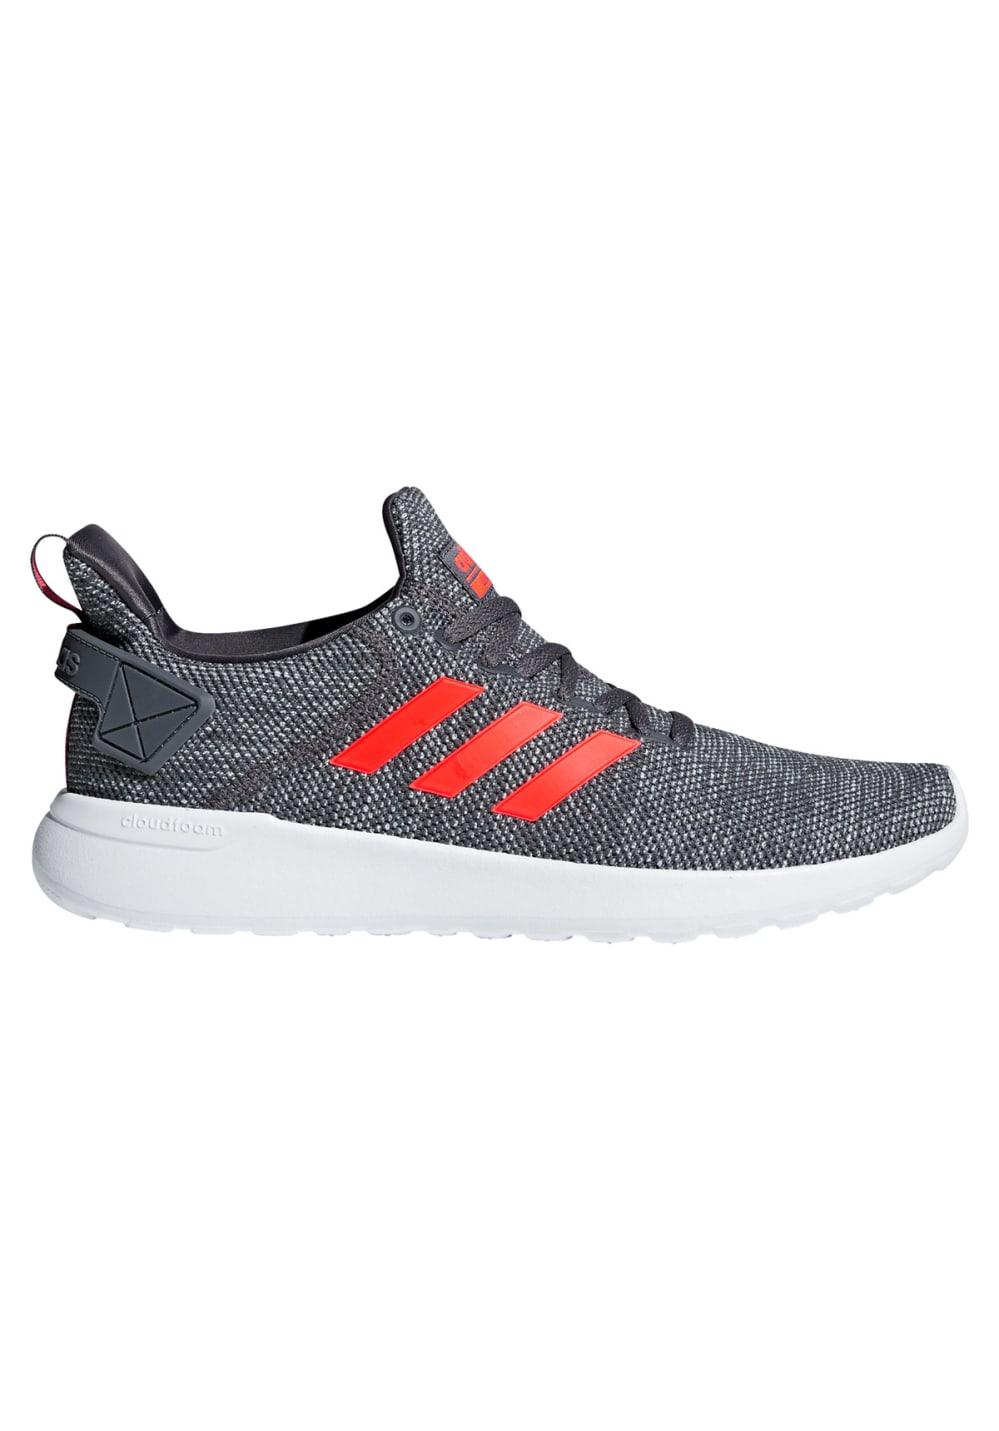 adidas Cloudfoam Lite Racer Byd Chaussures running pour Homme Gris